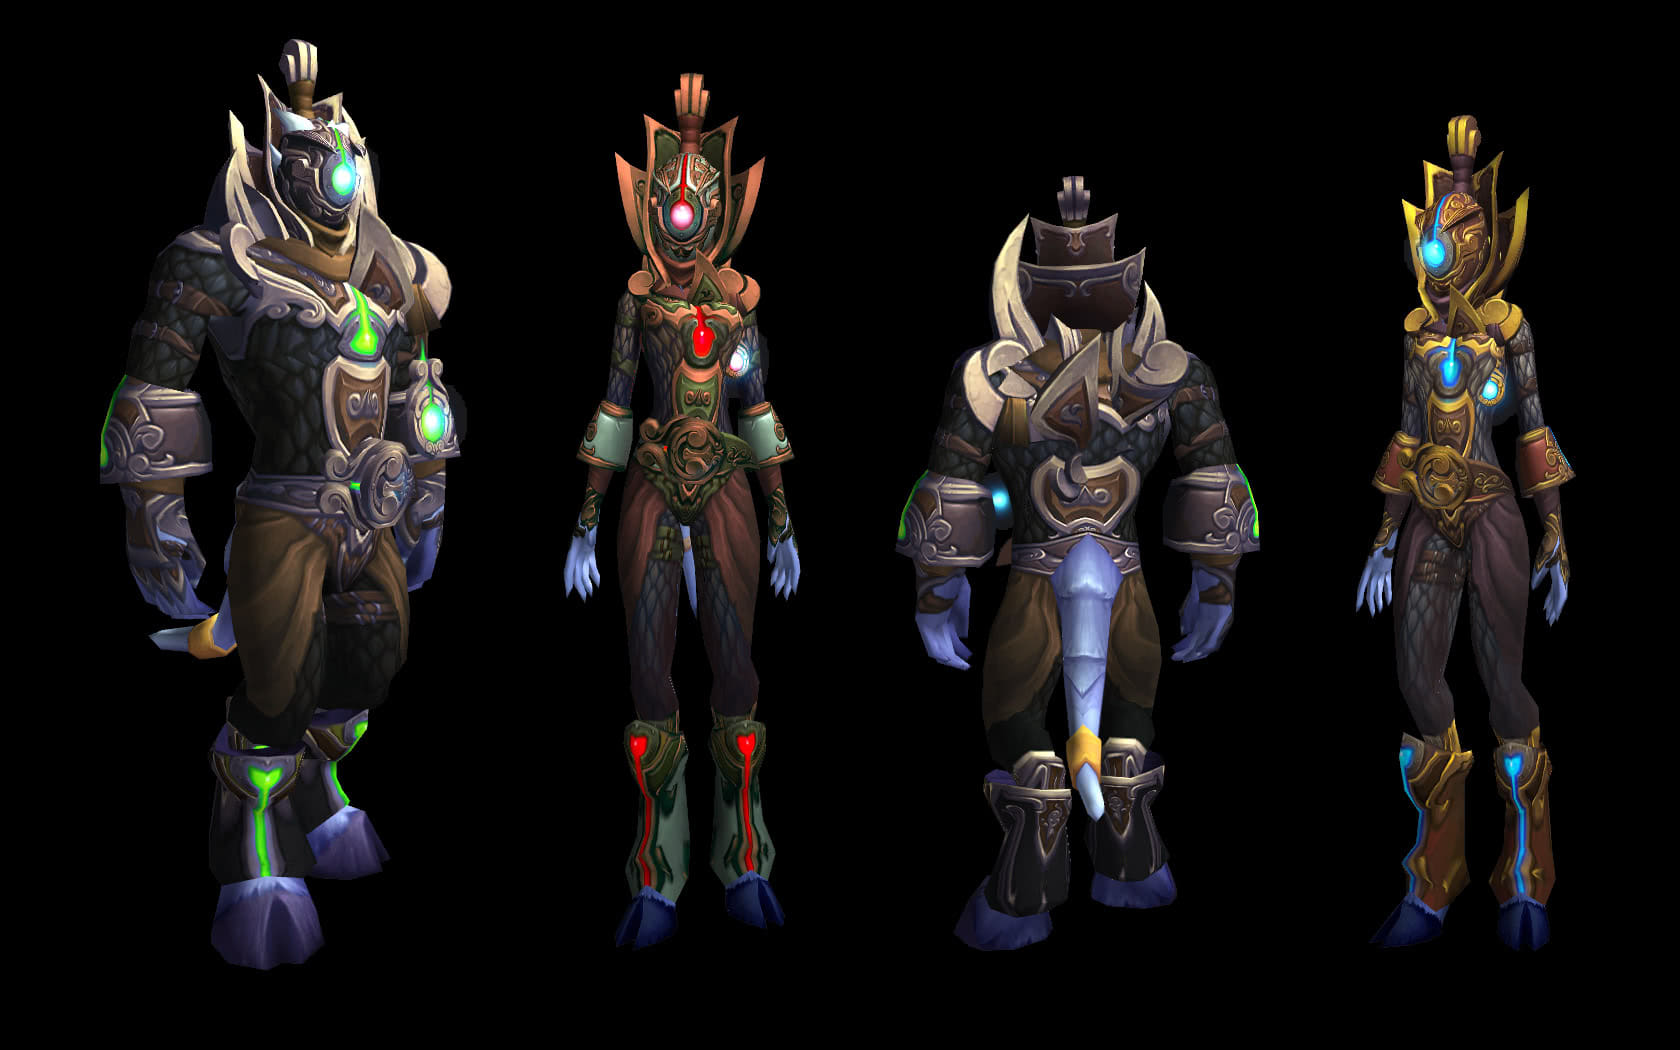 Declining quality of wow armour sets    - World of Warcraft Forums